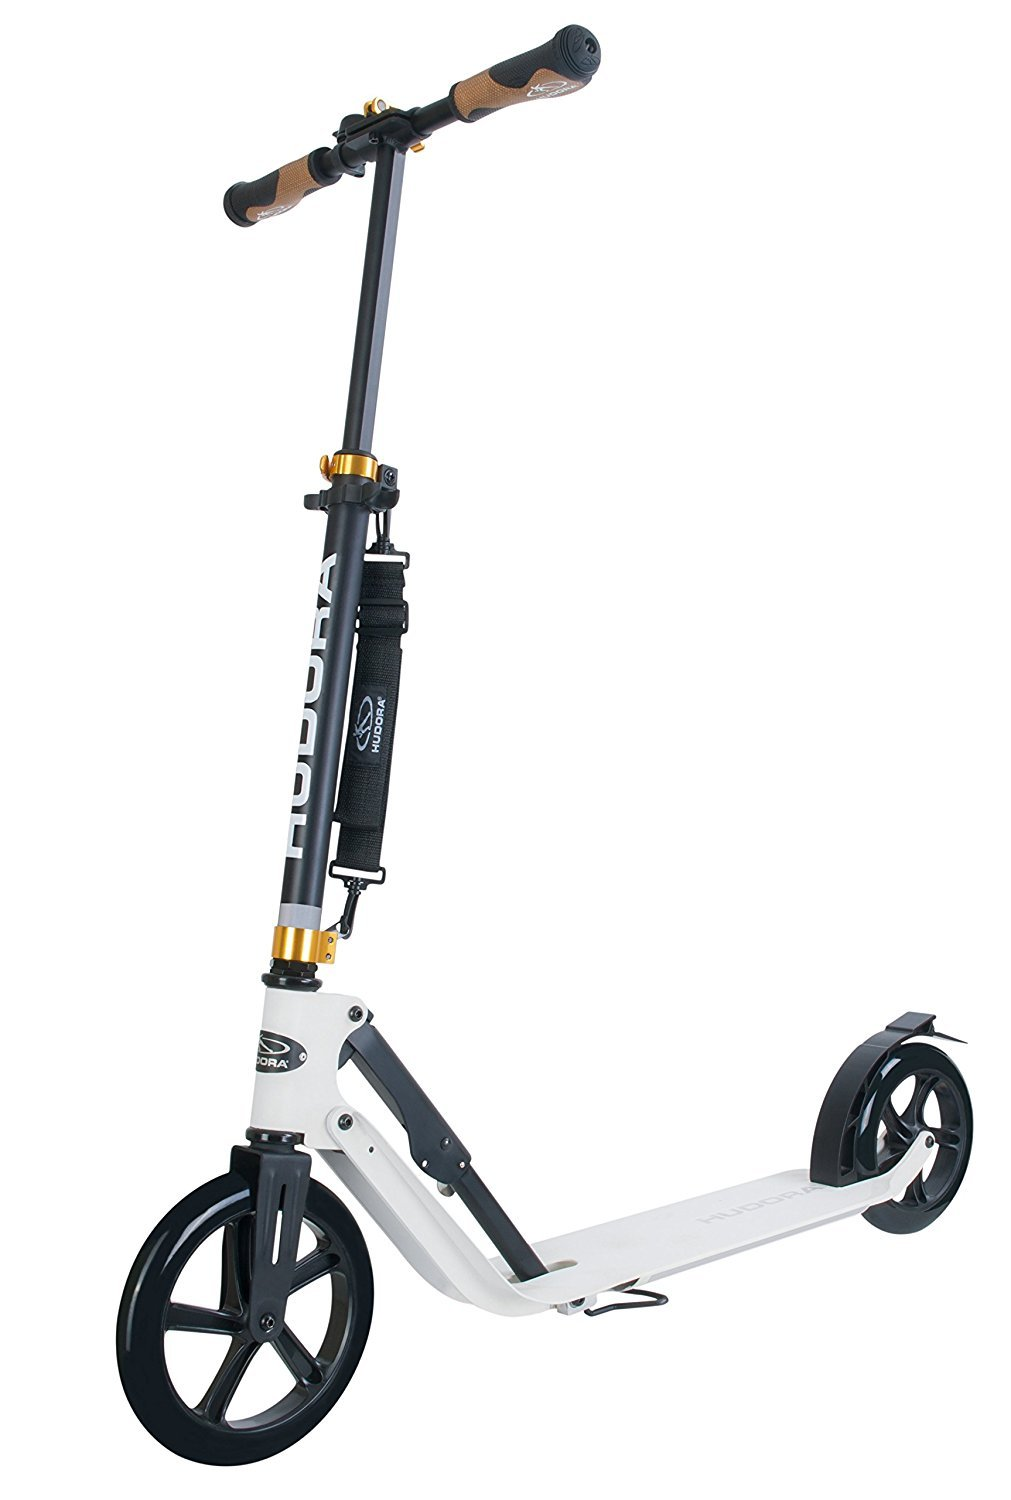 HUDORA 230 Adult Scooters Foldable Adjustable Kick Scooter Aluminum outdoor use (White) by HUDORA